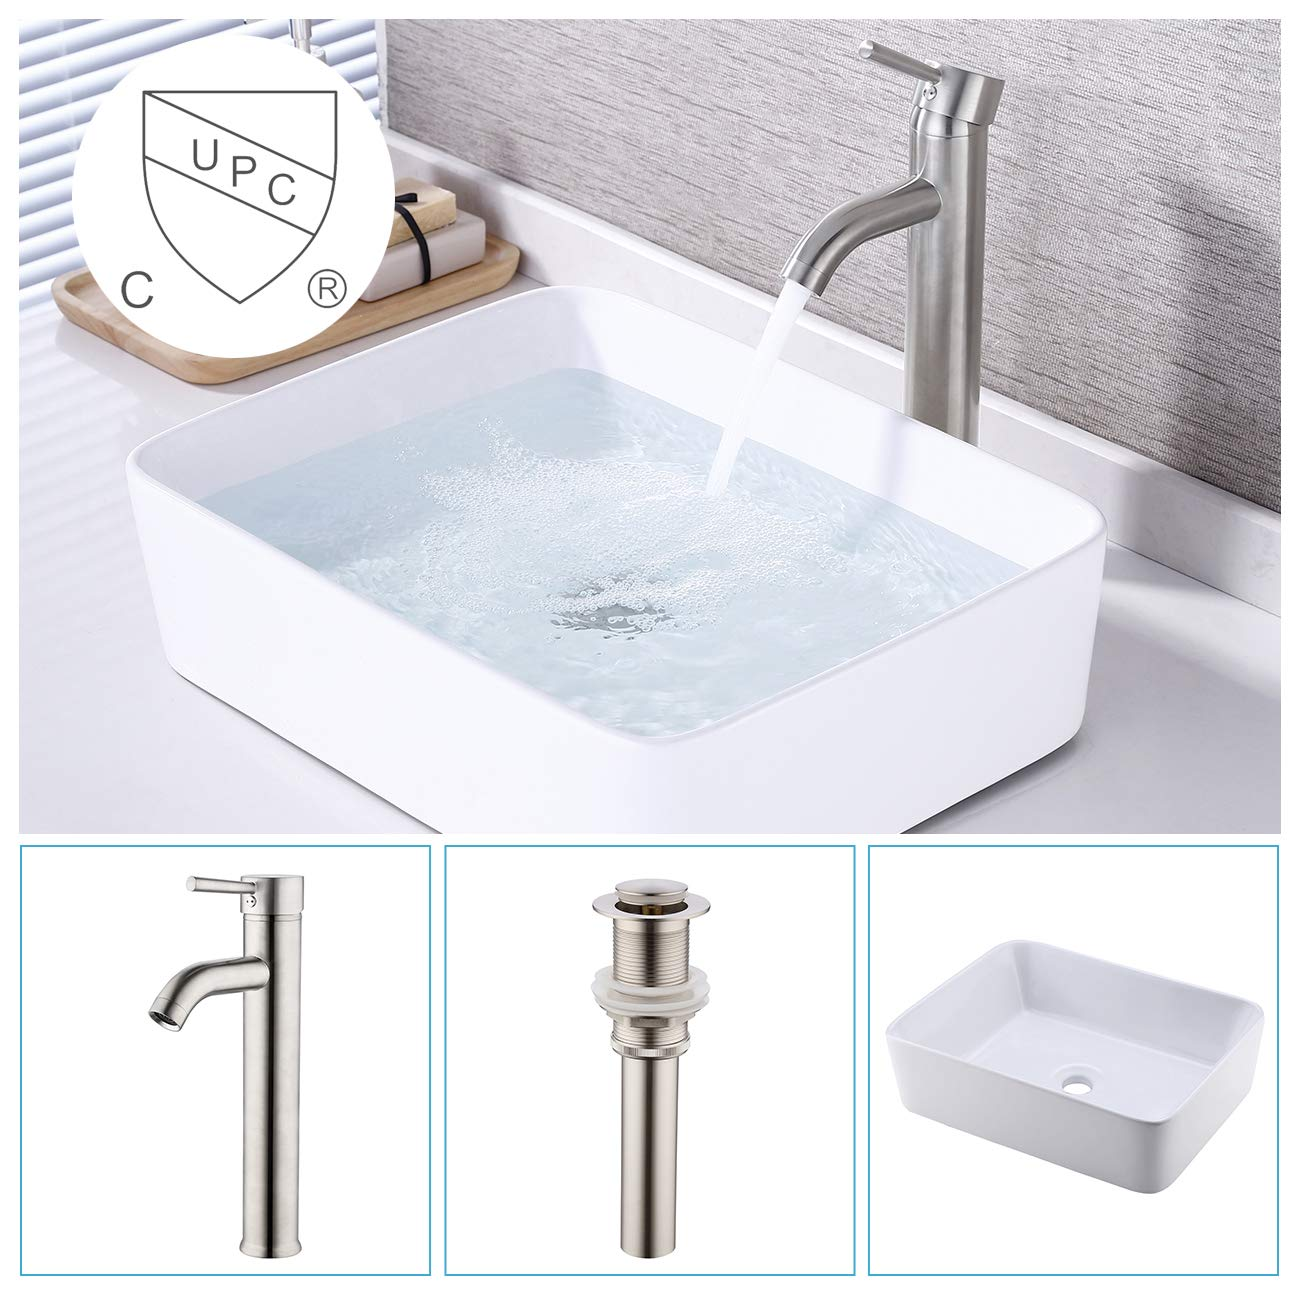 KES Bathroom Vessel Sink and Faucet Combo Bathroom Rectangular White Ceramic Porcelain Counter Top Vanity Bowl Sink Brushed Nickel Faucet, BVS110-C2